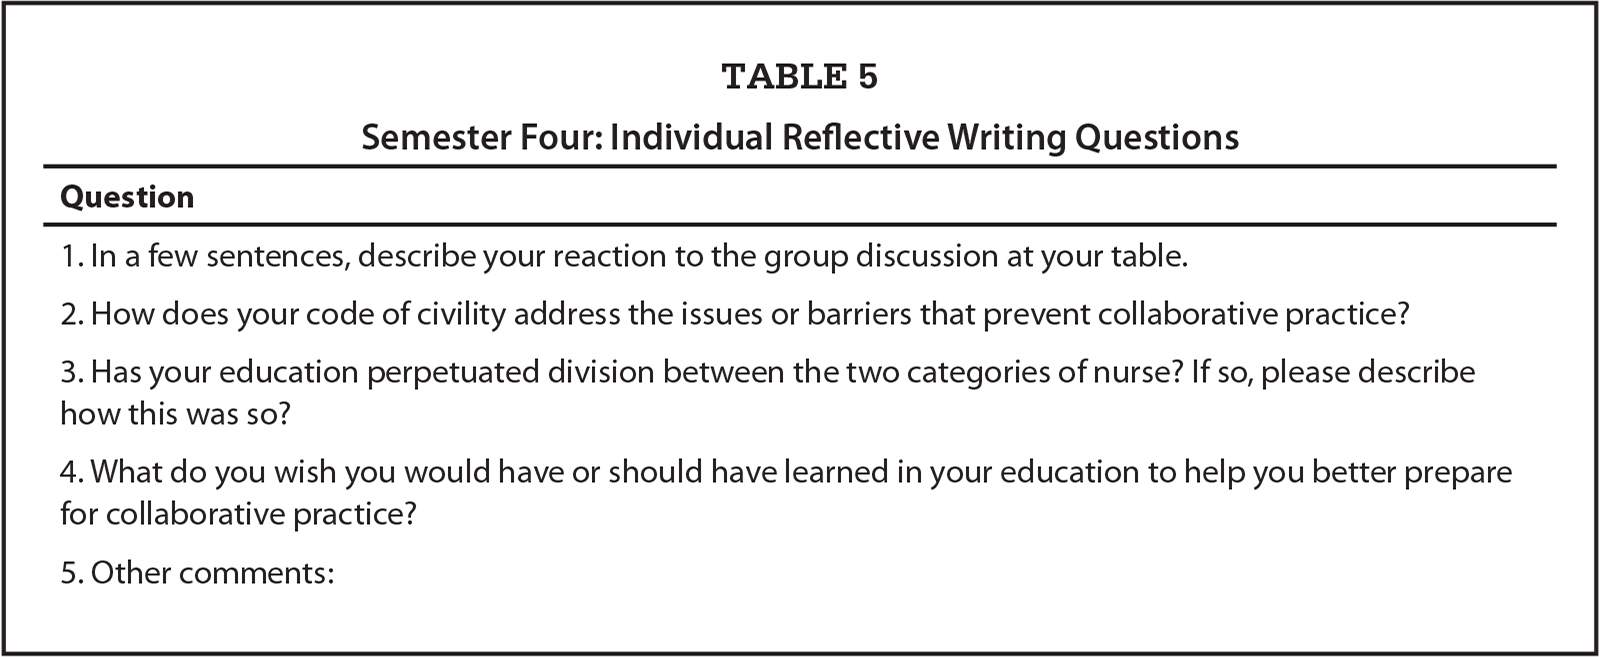 Semester Four: Individual Reflective Writing Questions